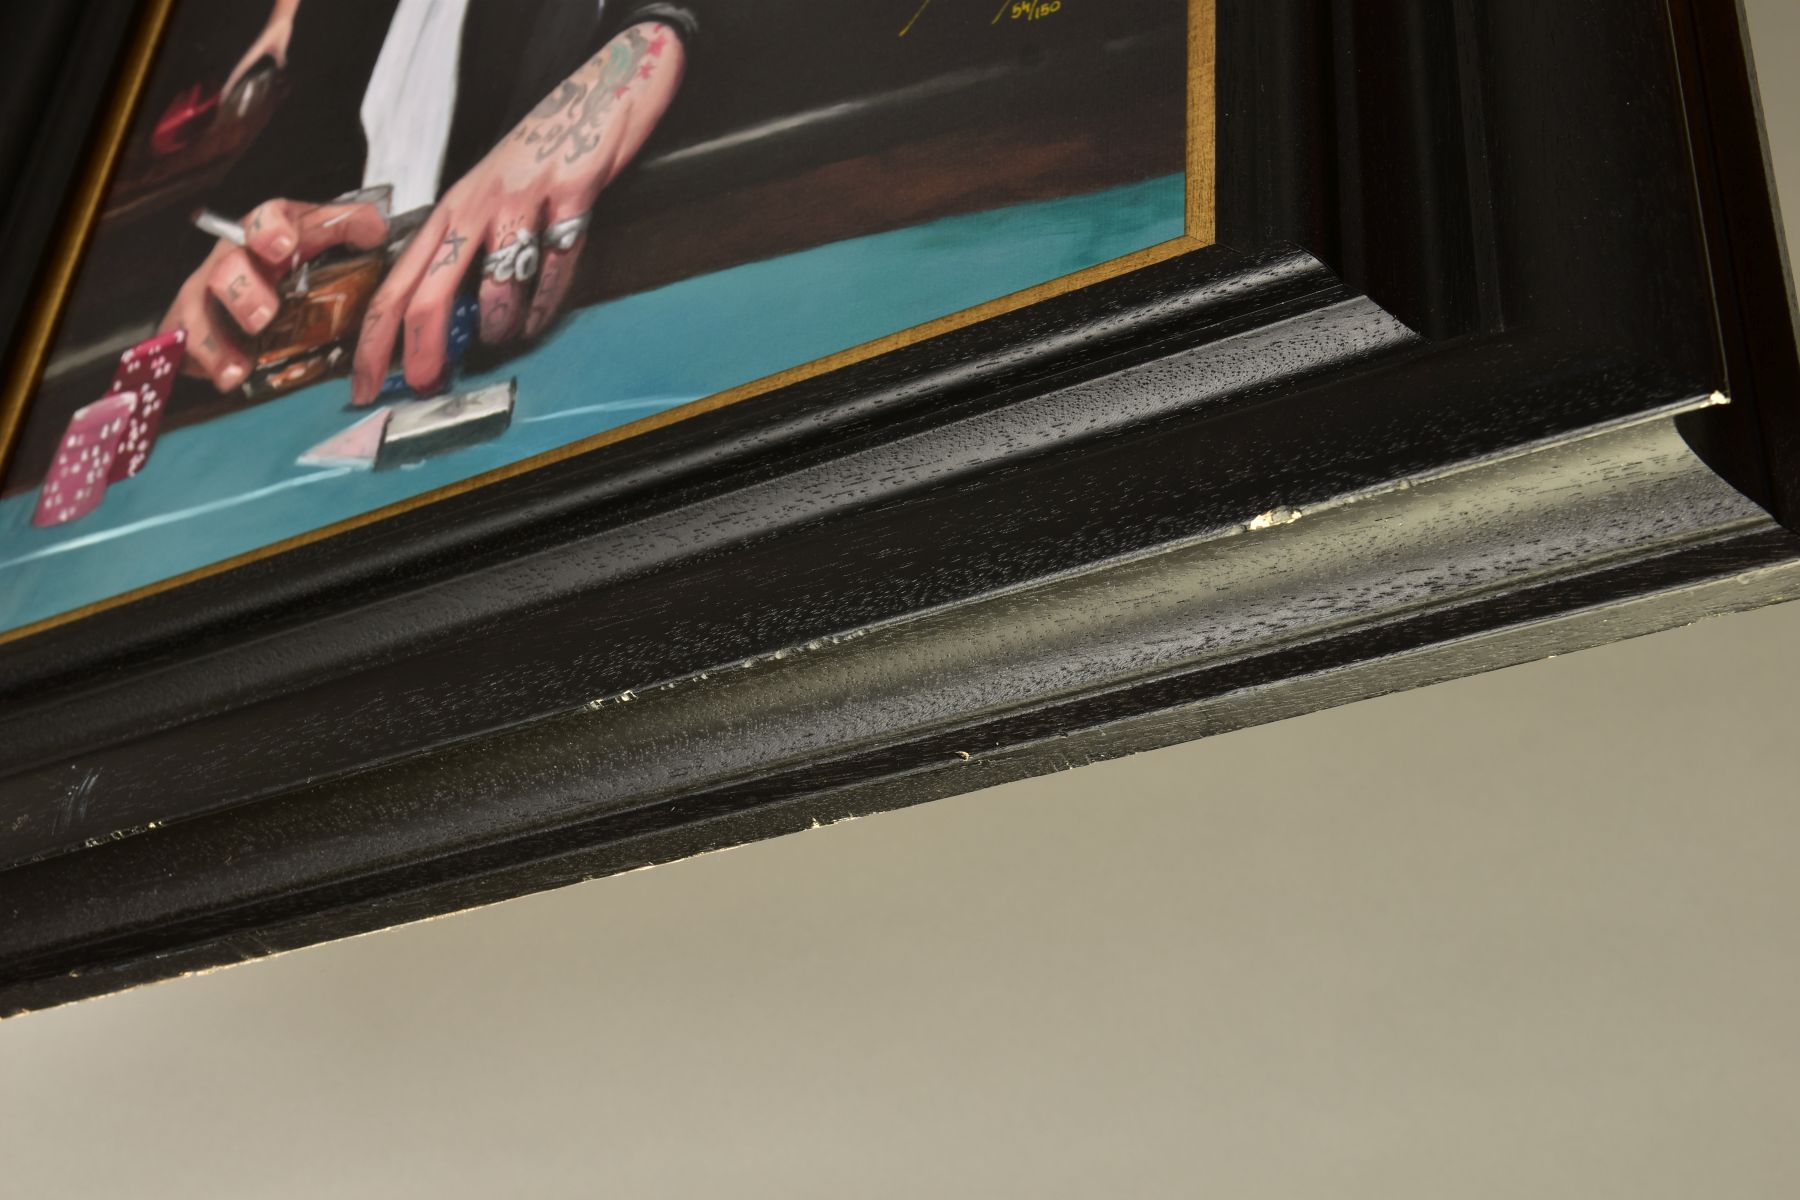 VINCENT KAMP (BRITISH CONTEMPORARY) 'NOT DONE YET' a limited edition print of a gambler in a - Image 7 of 7